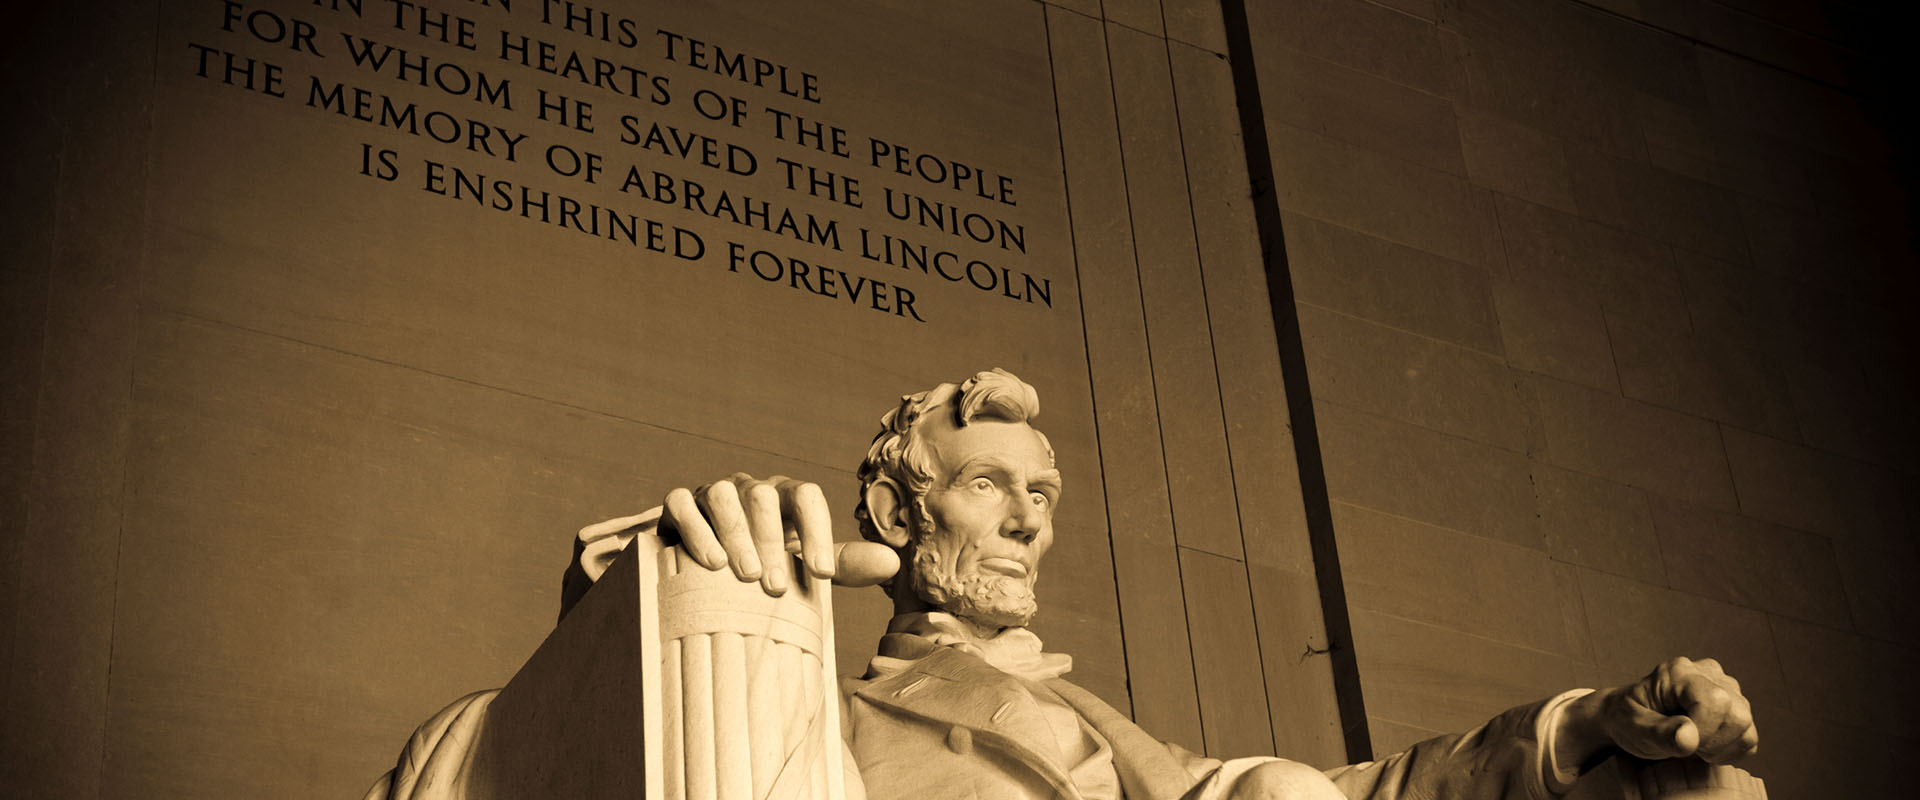 Lincoln's Birthday 2019 and 2020 - PublicHolidays.us